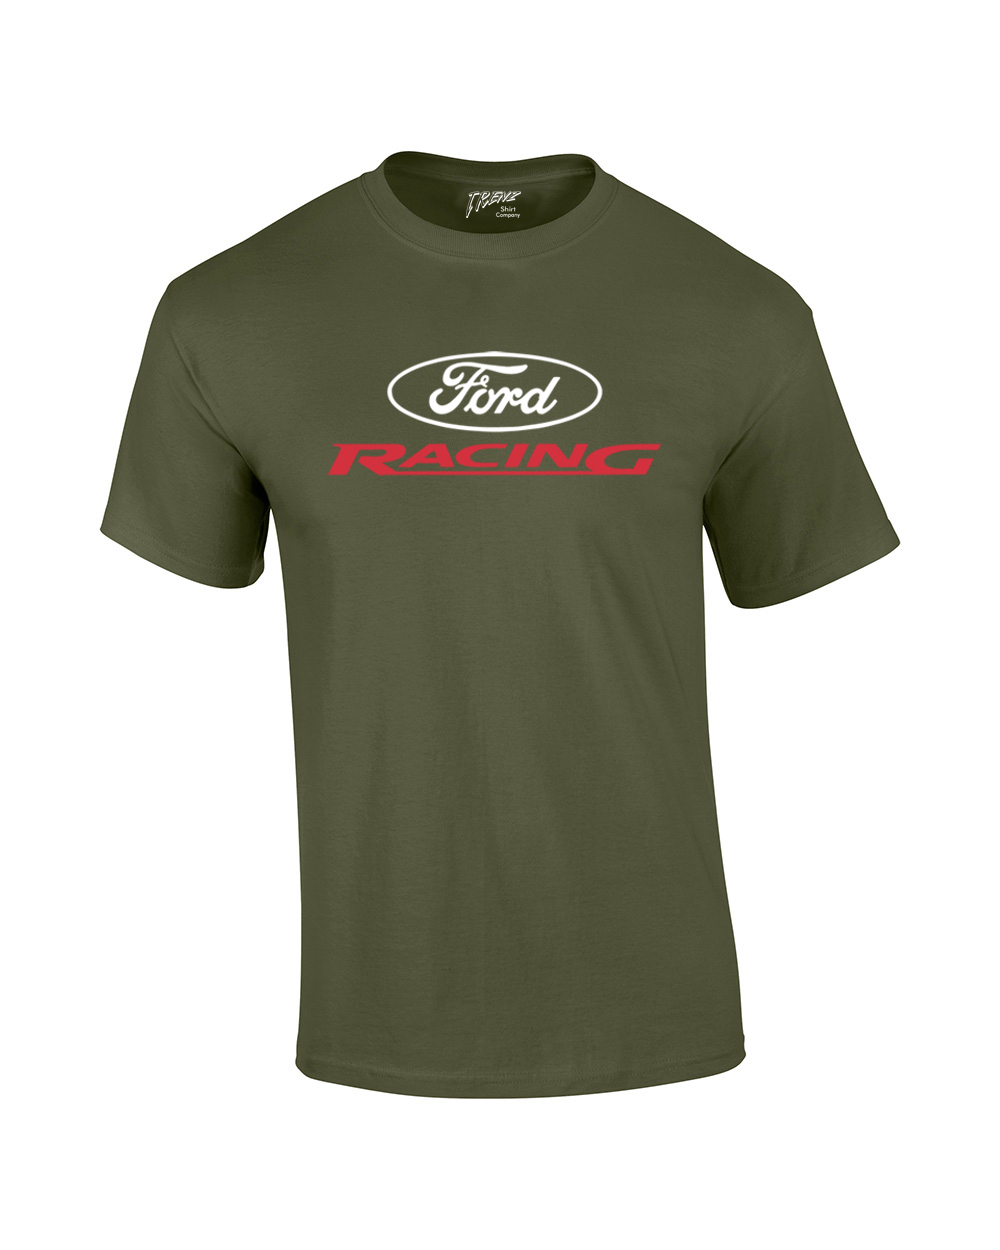 Racing T Shirt Design Ideas Details About Ford Racing T Shirt Ford Racing Logo Design